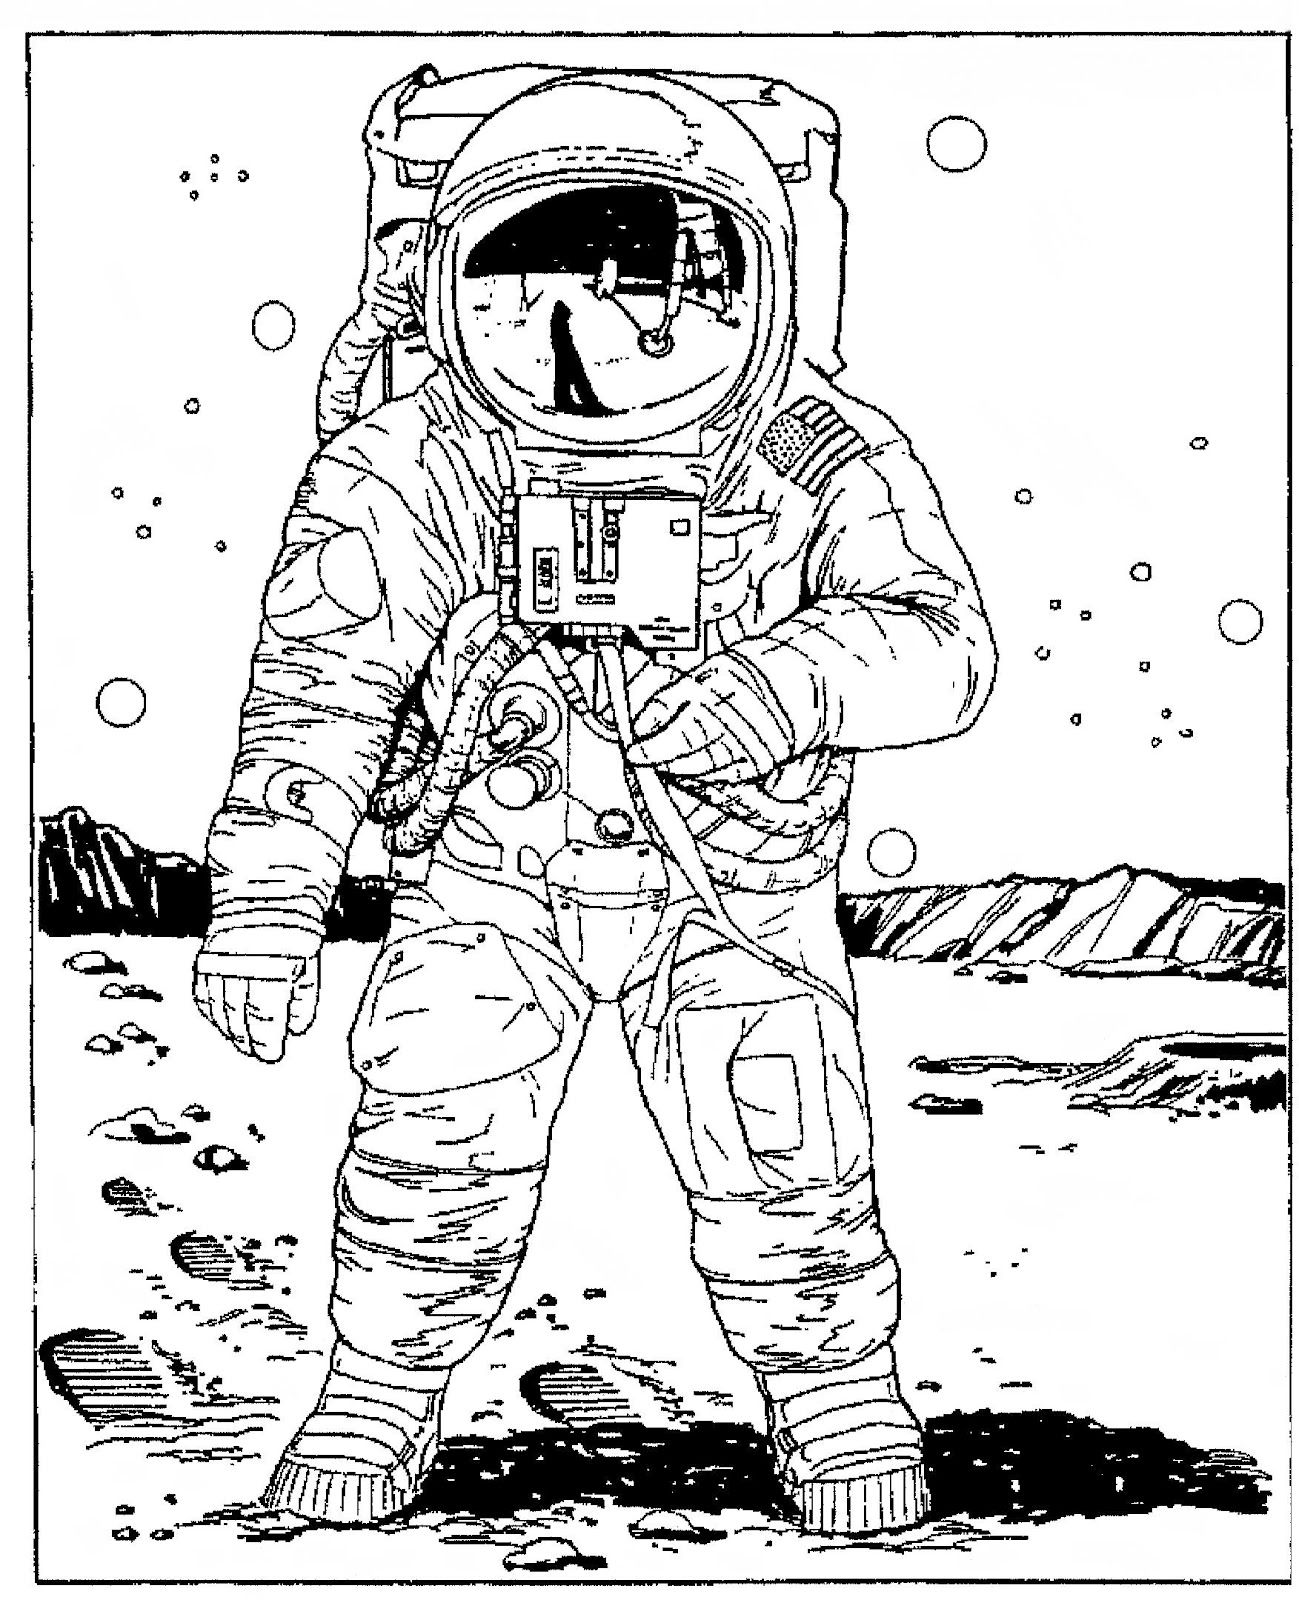 Timmy the Tooth Coloring Pages | astronaut Colouring Pages ...